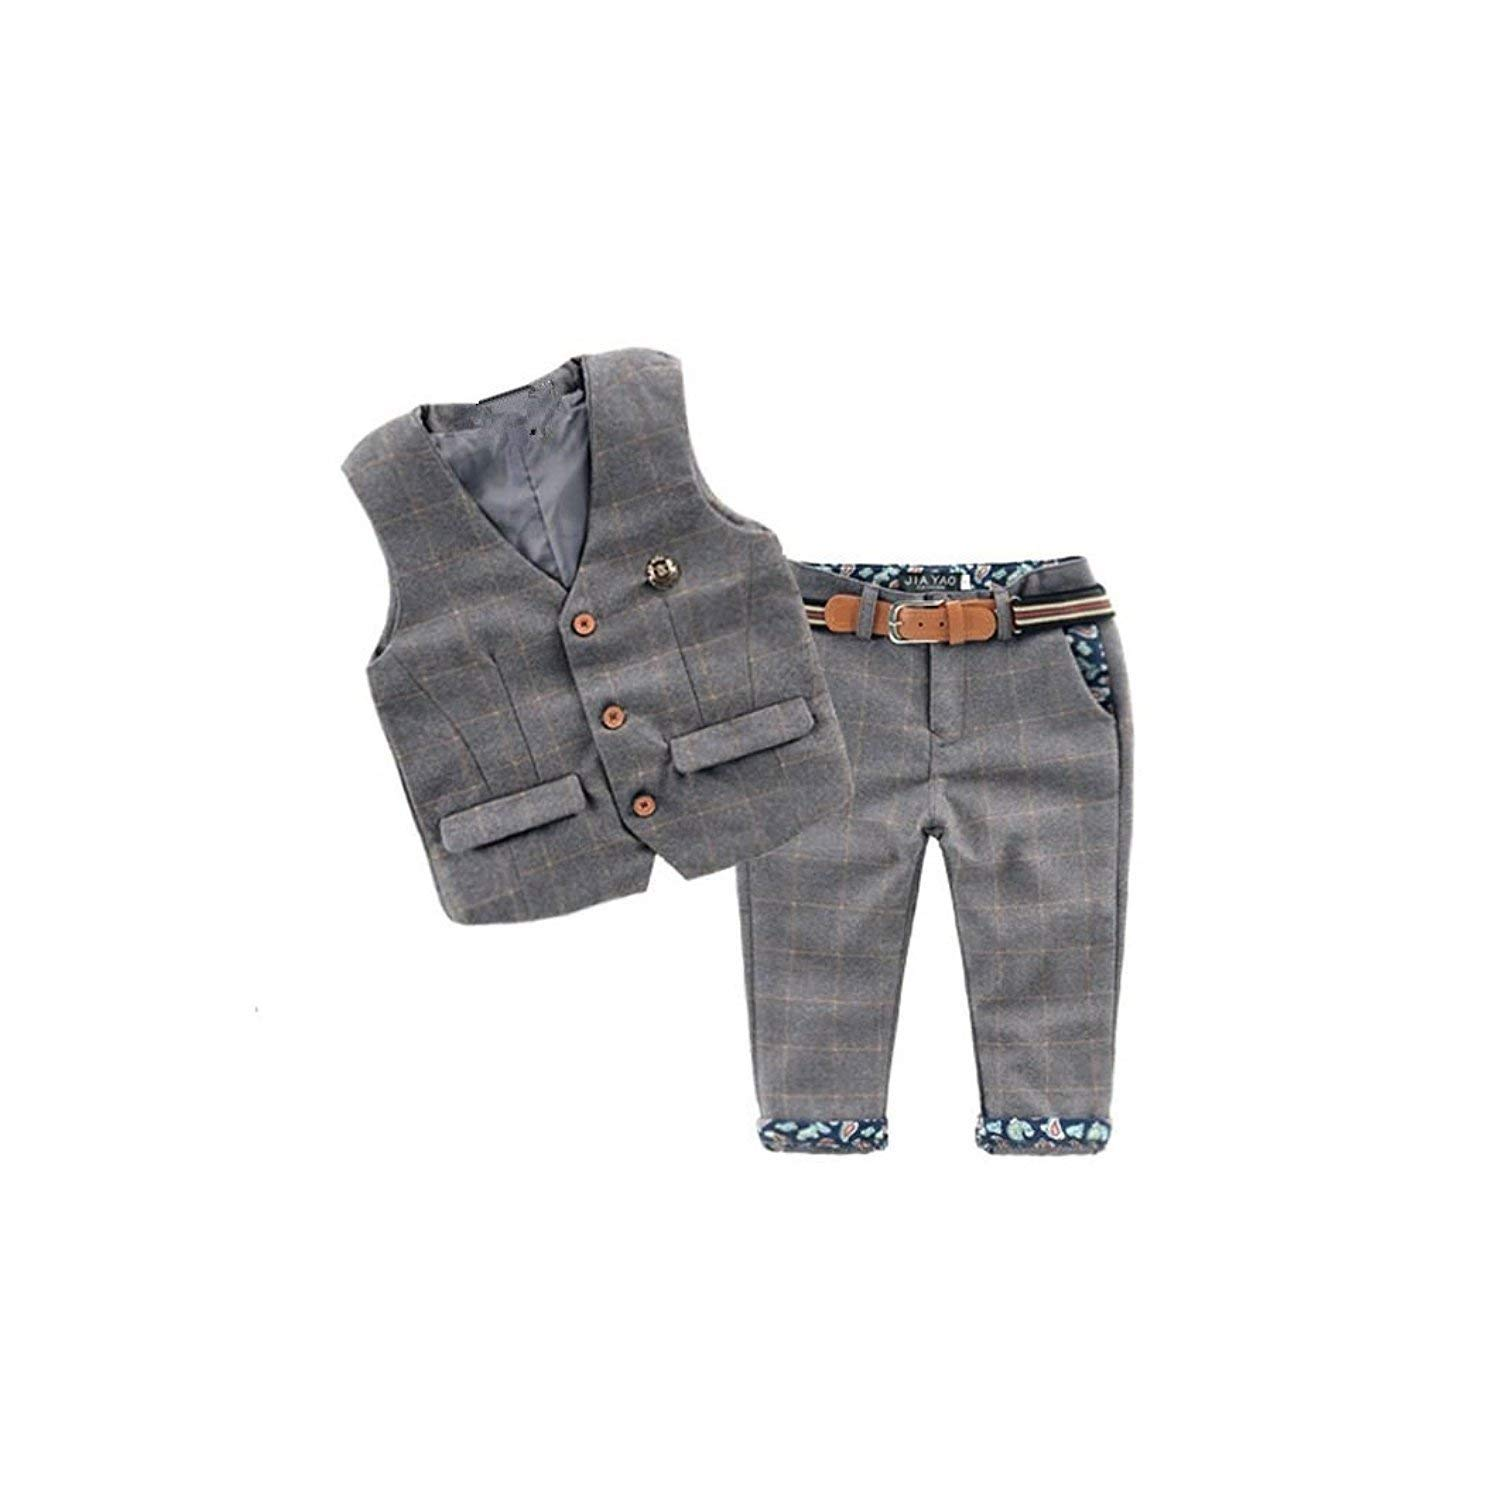 Kids Boys Vintage Tuxedo Waistcoat Pant Outfit Gentleman Wedding Suit